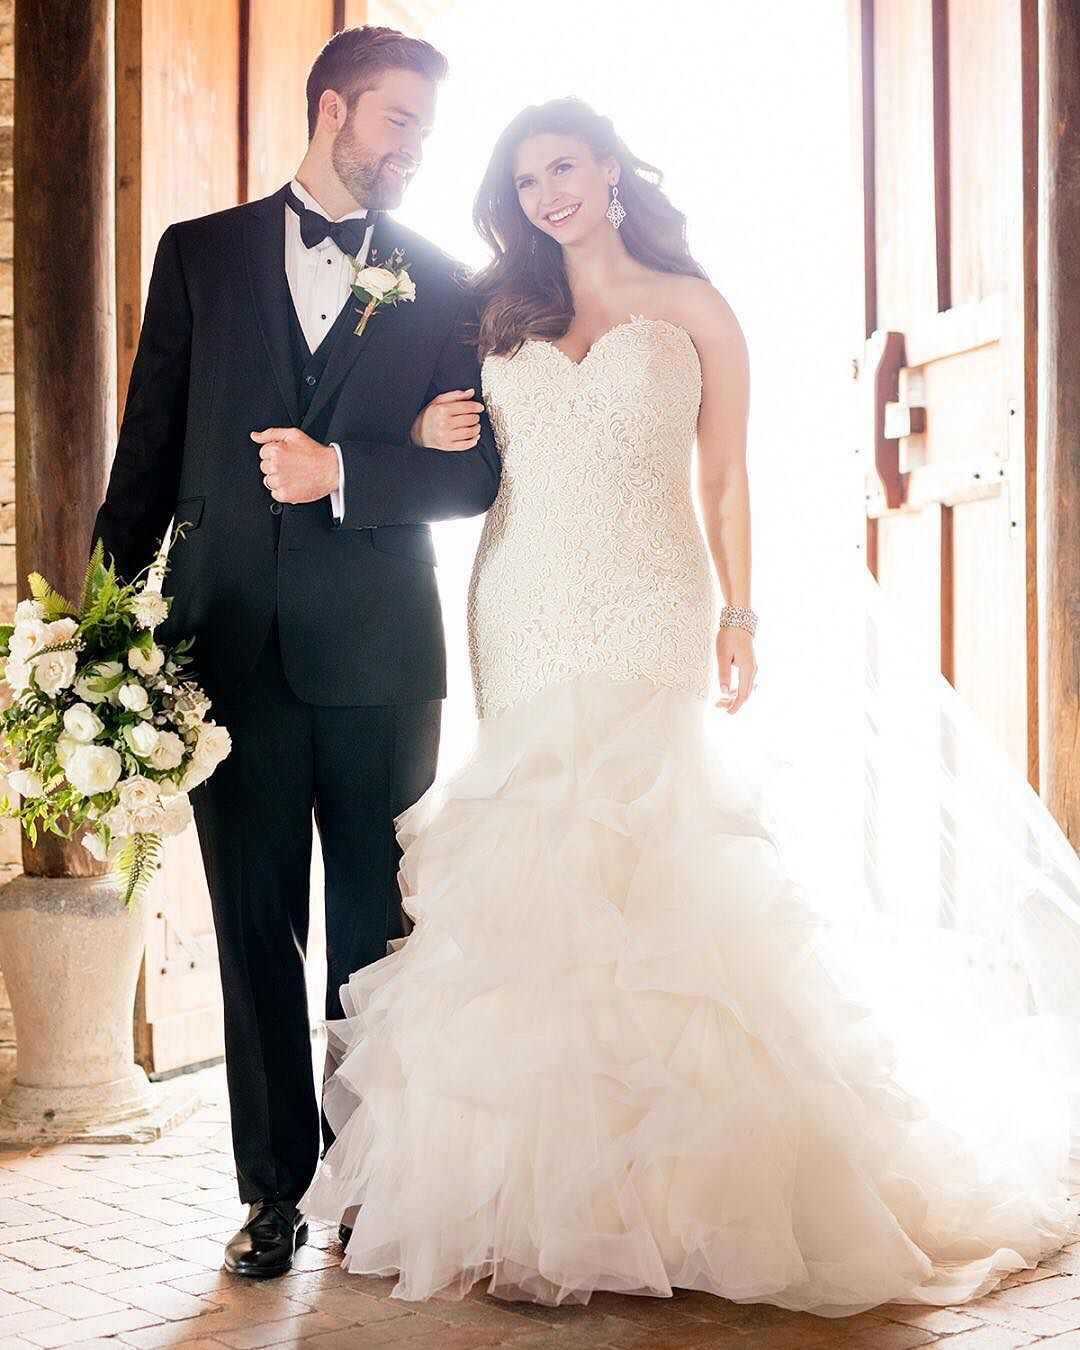 Pin by Essense of Australia on Shop the look Wedding